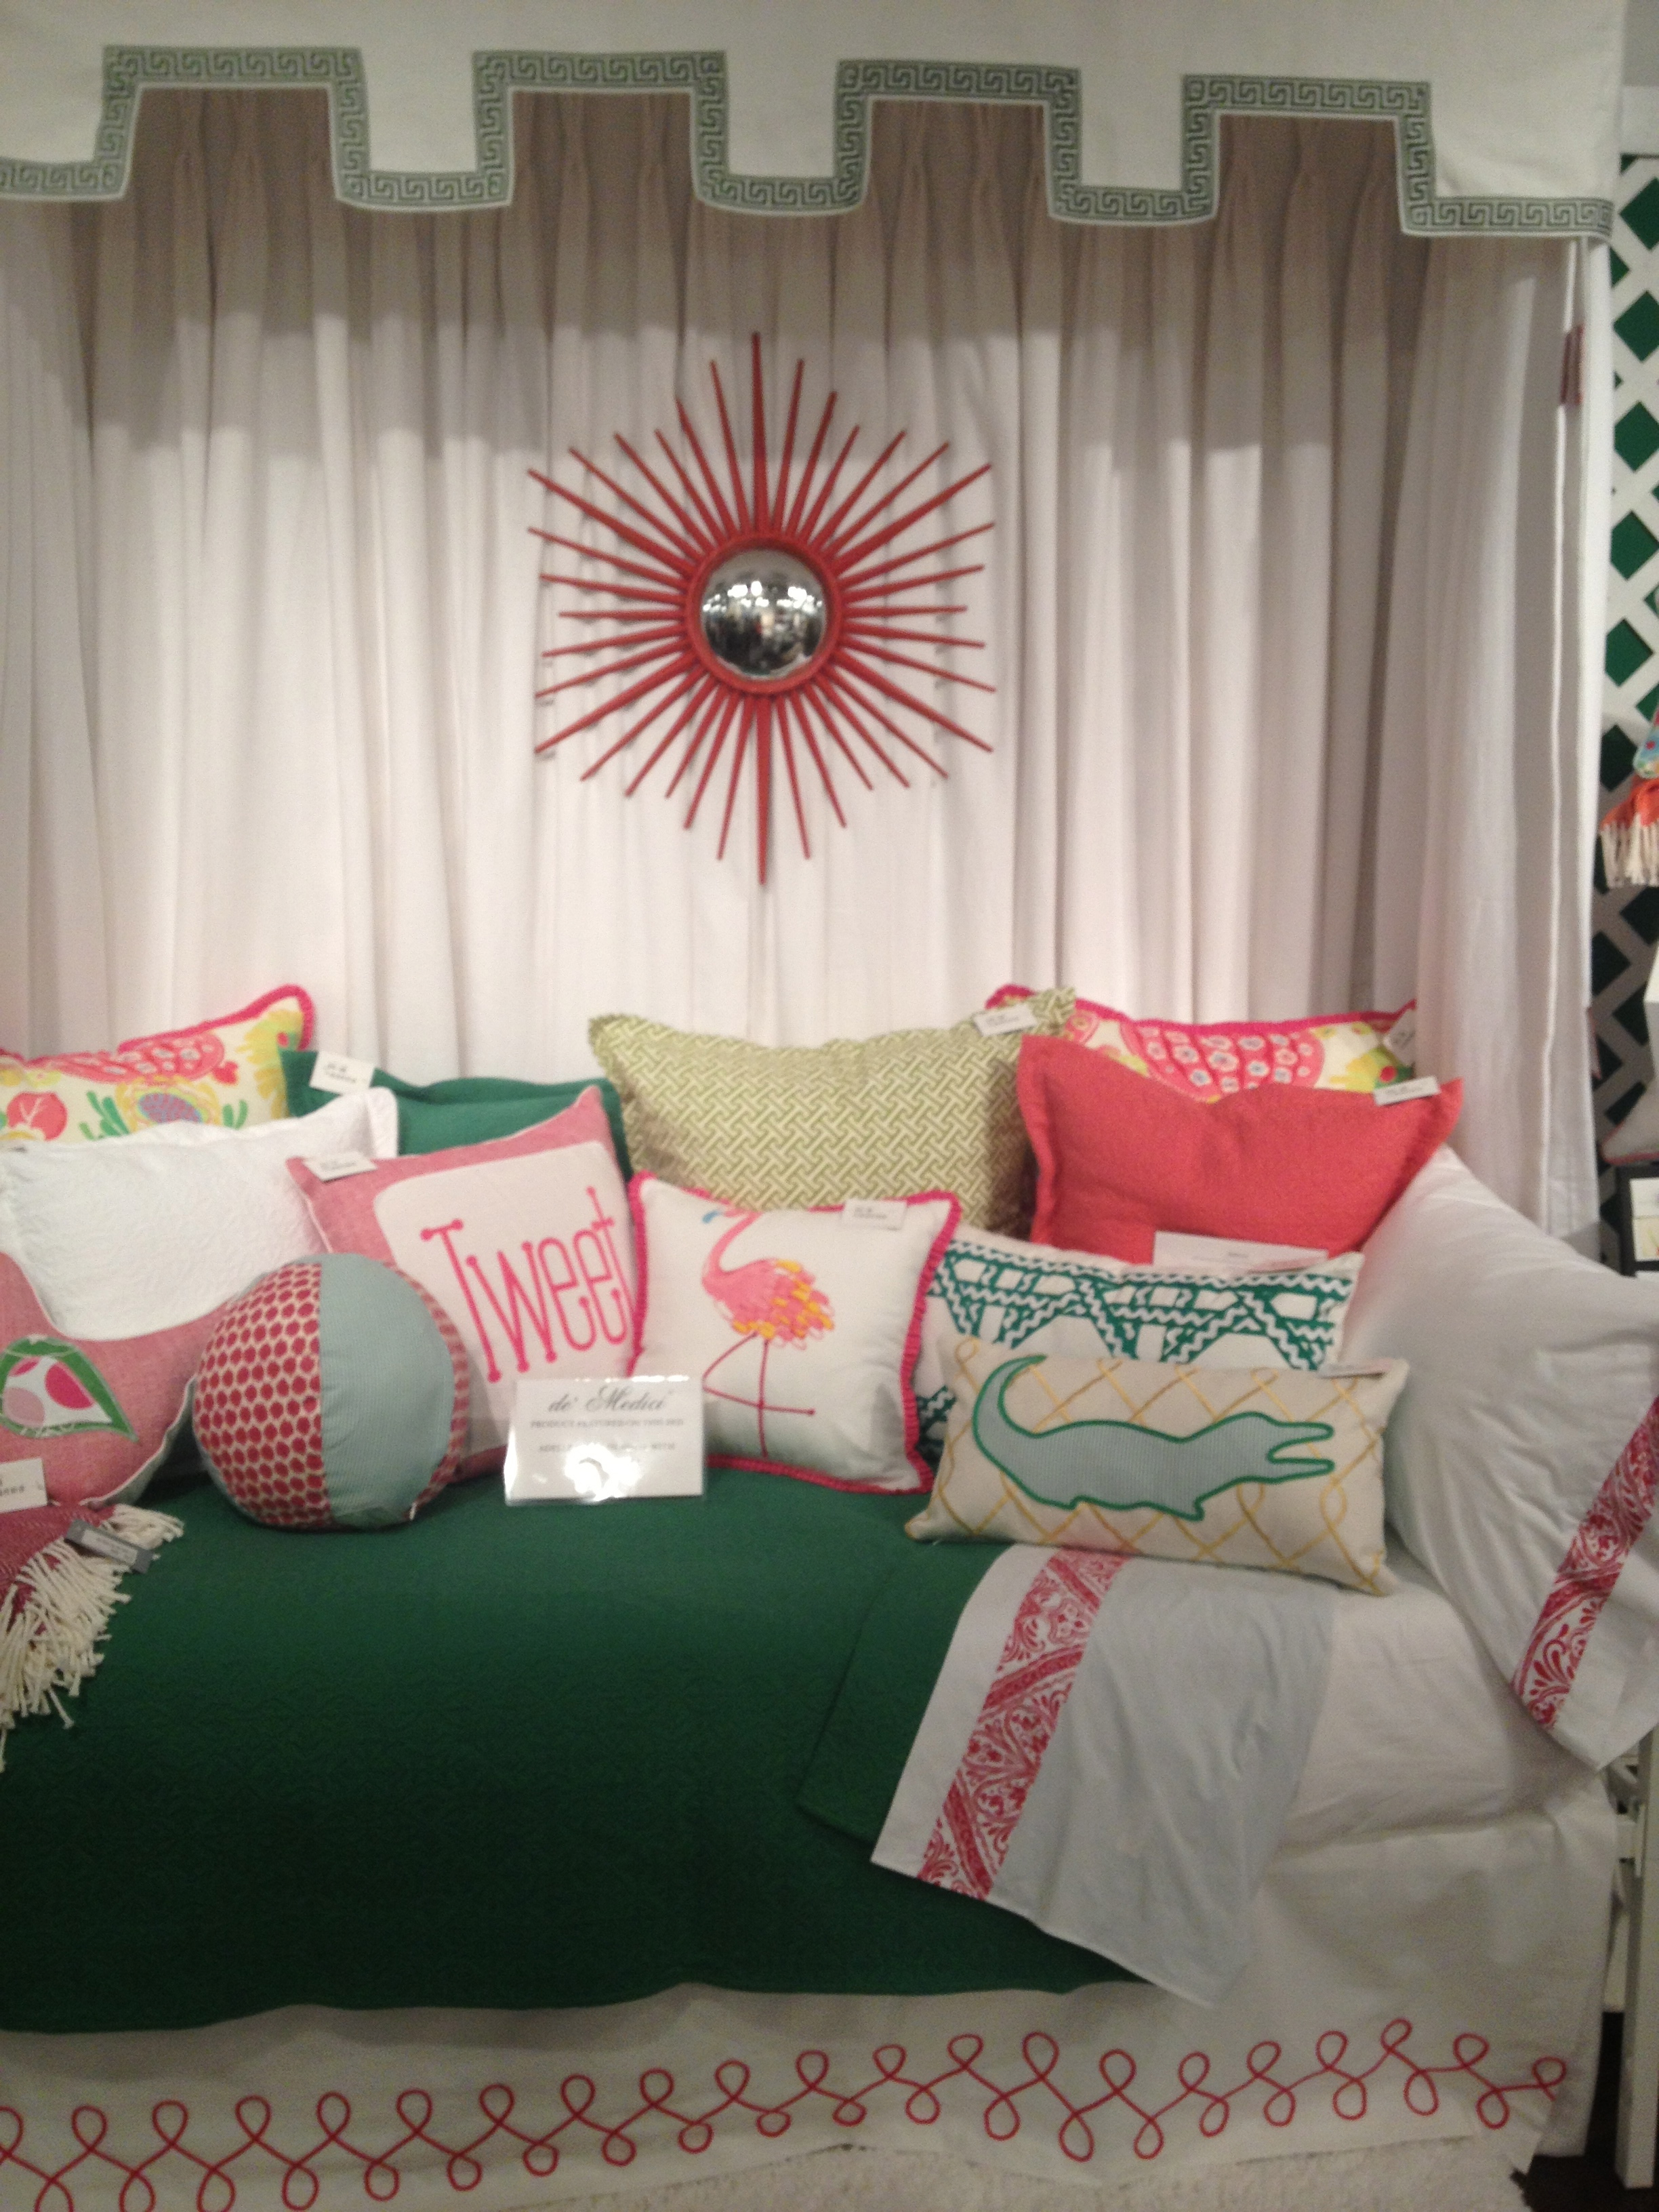 Fun bedding I saw at market. It's designed for a young lady but a few tweaks and could be perfect for women of all ages or a great happy guest room. www.saranobledesigns.com